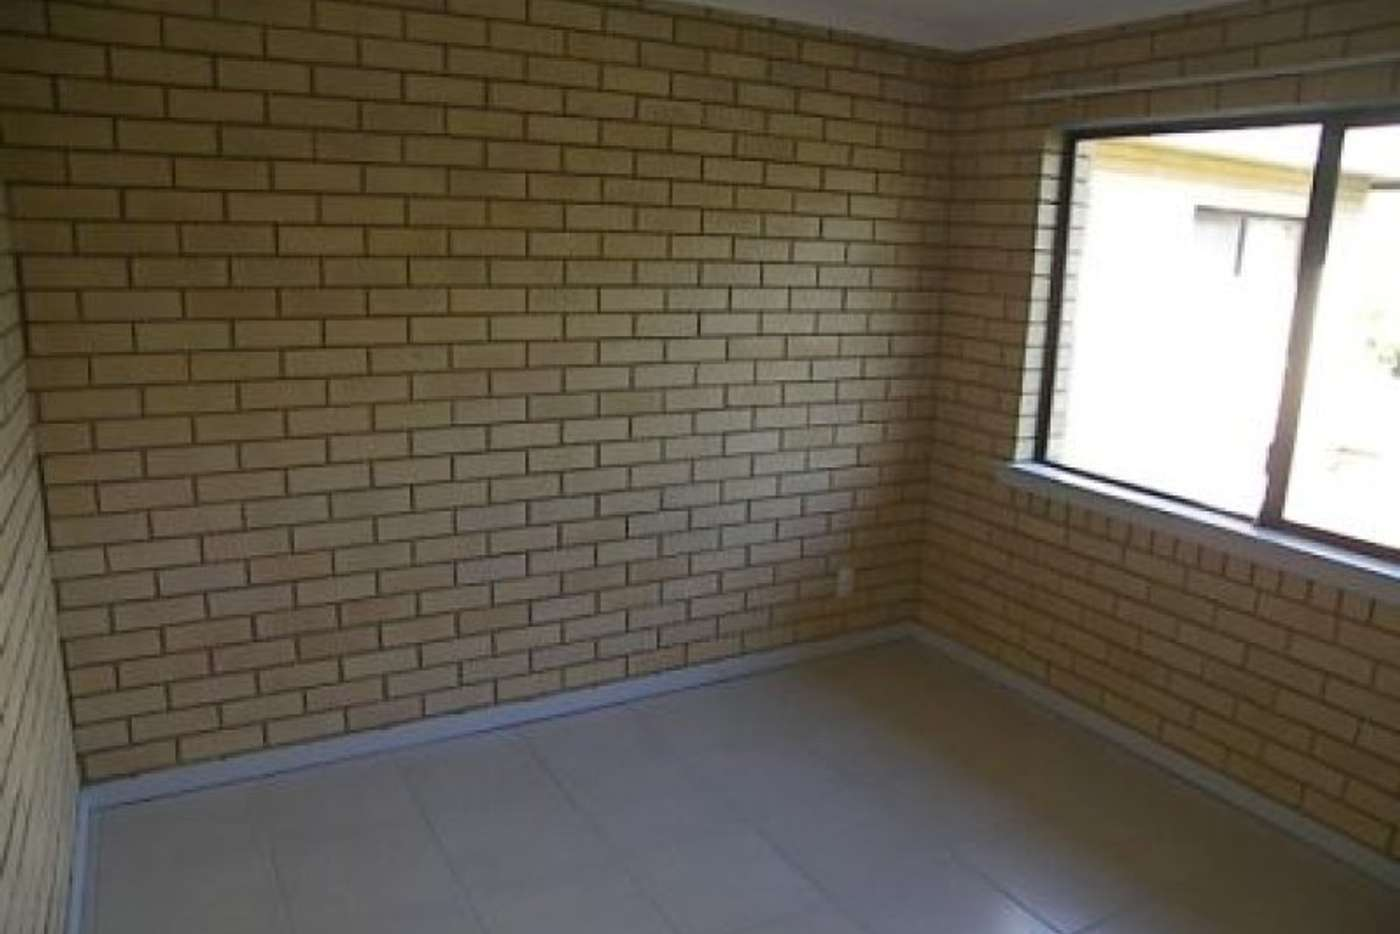 Sixth view of Homely apartment listing, 11/8 Prince Street, Woodridge QLD 4114